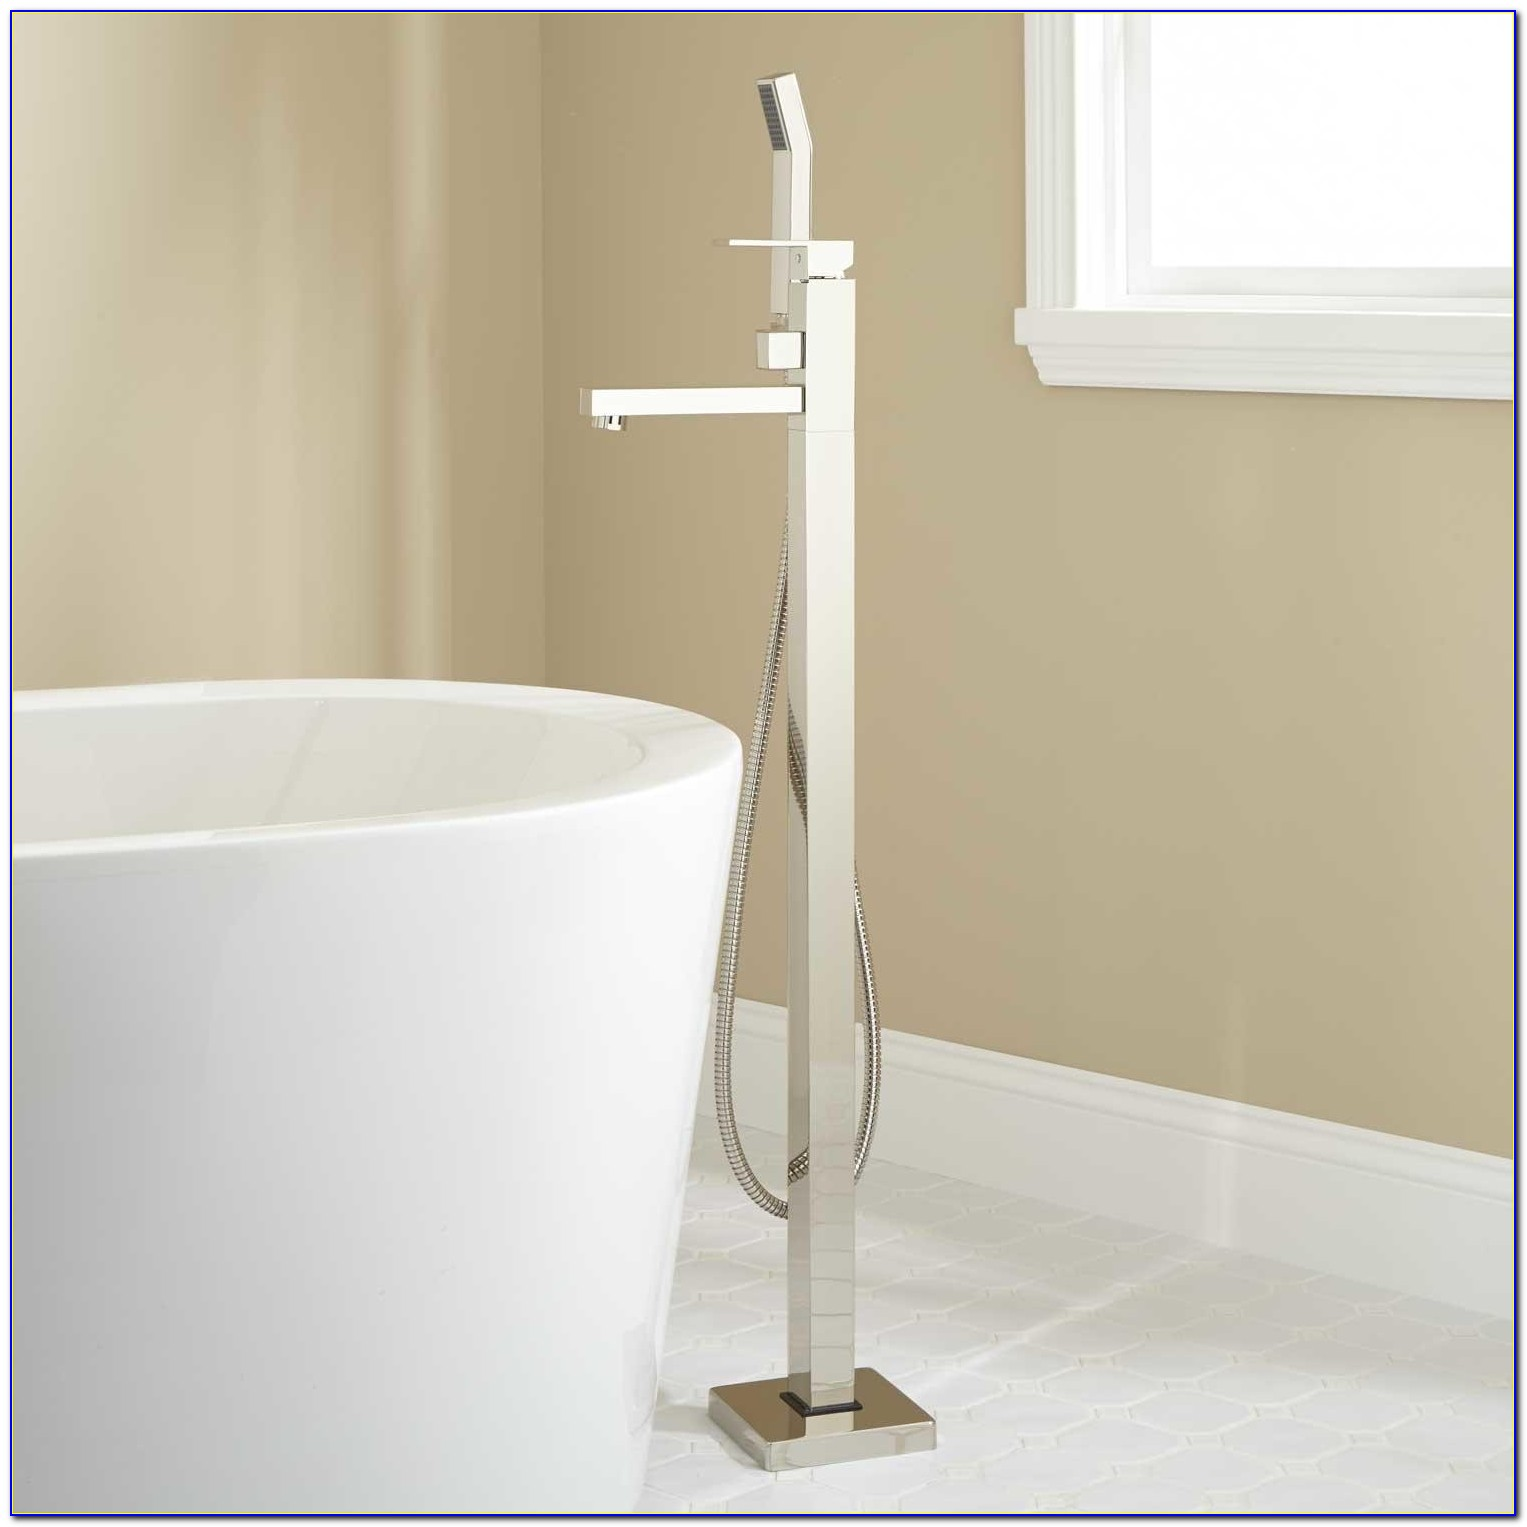 Best Faucet For Freestanding Tub